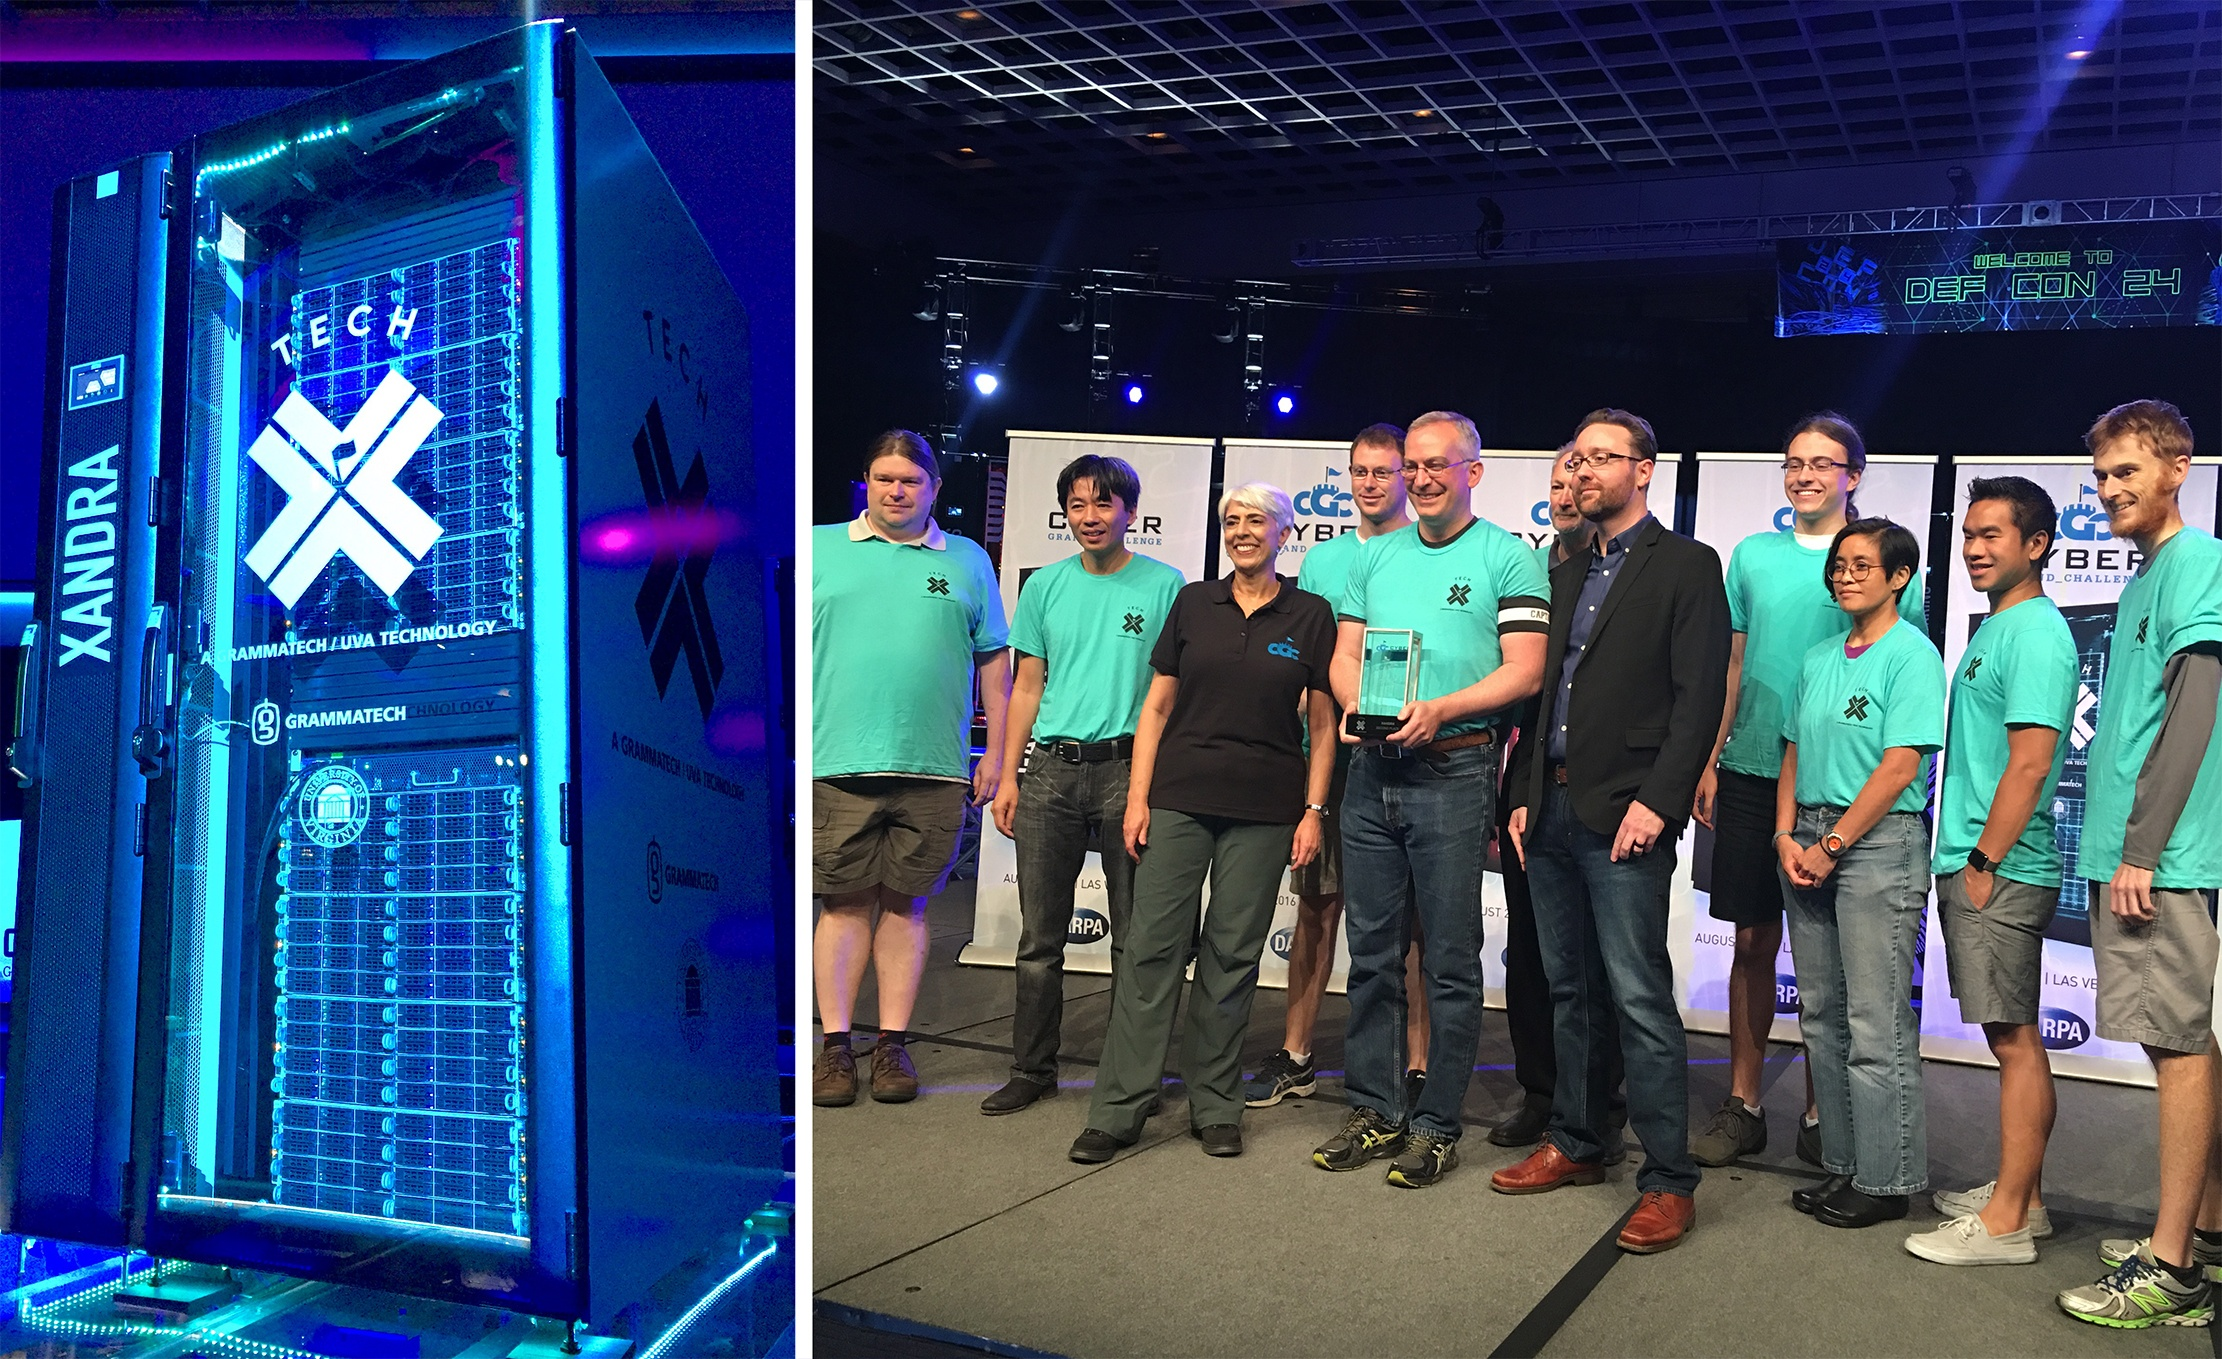 GrammaTech's Team TECHx Places Second in DARPA's Cyber Grand Challenge